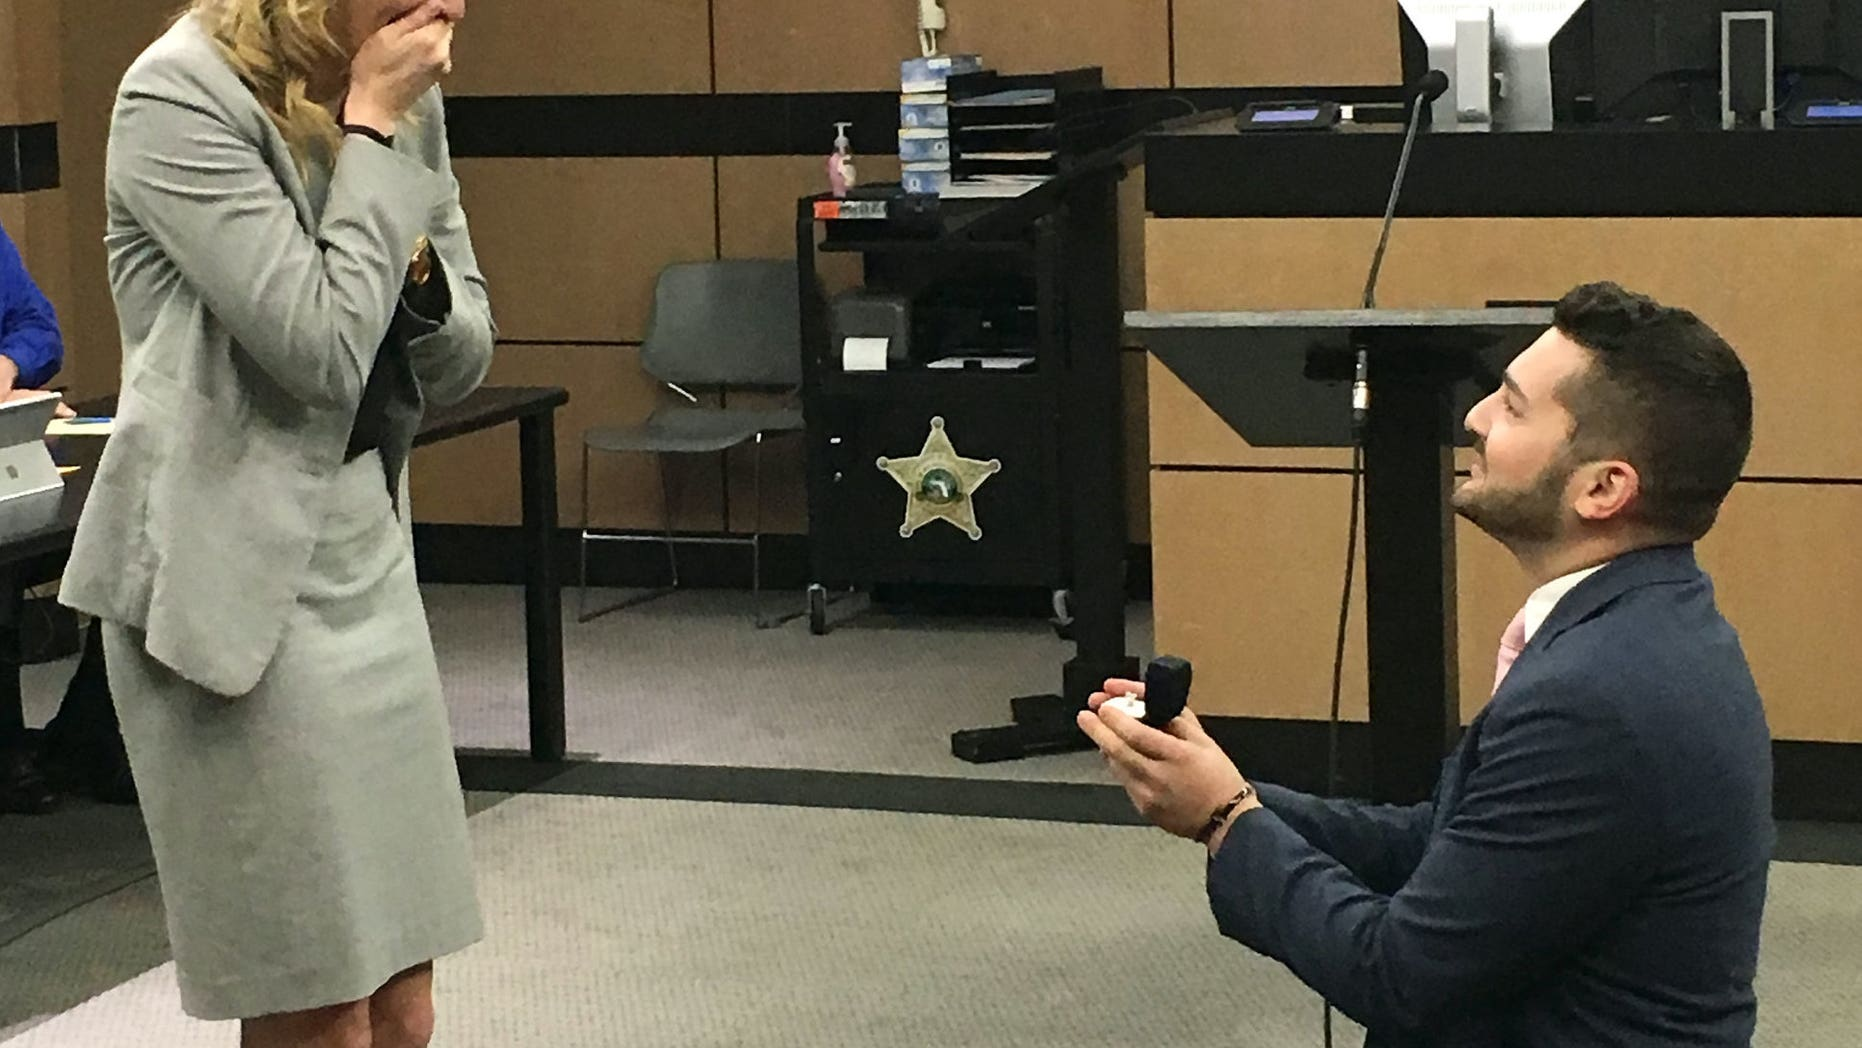 Brandon Dinetzconstructed an elaborate fake legal trial at the Palm Beach County Courthouse to propose to his fellow legal-eagle girlfriend Jen